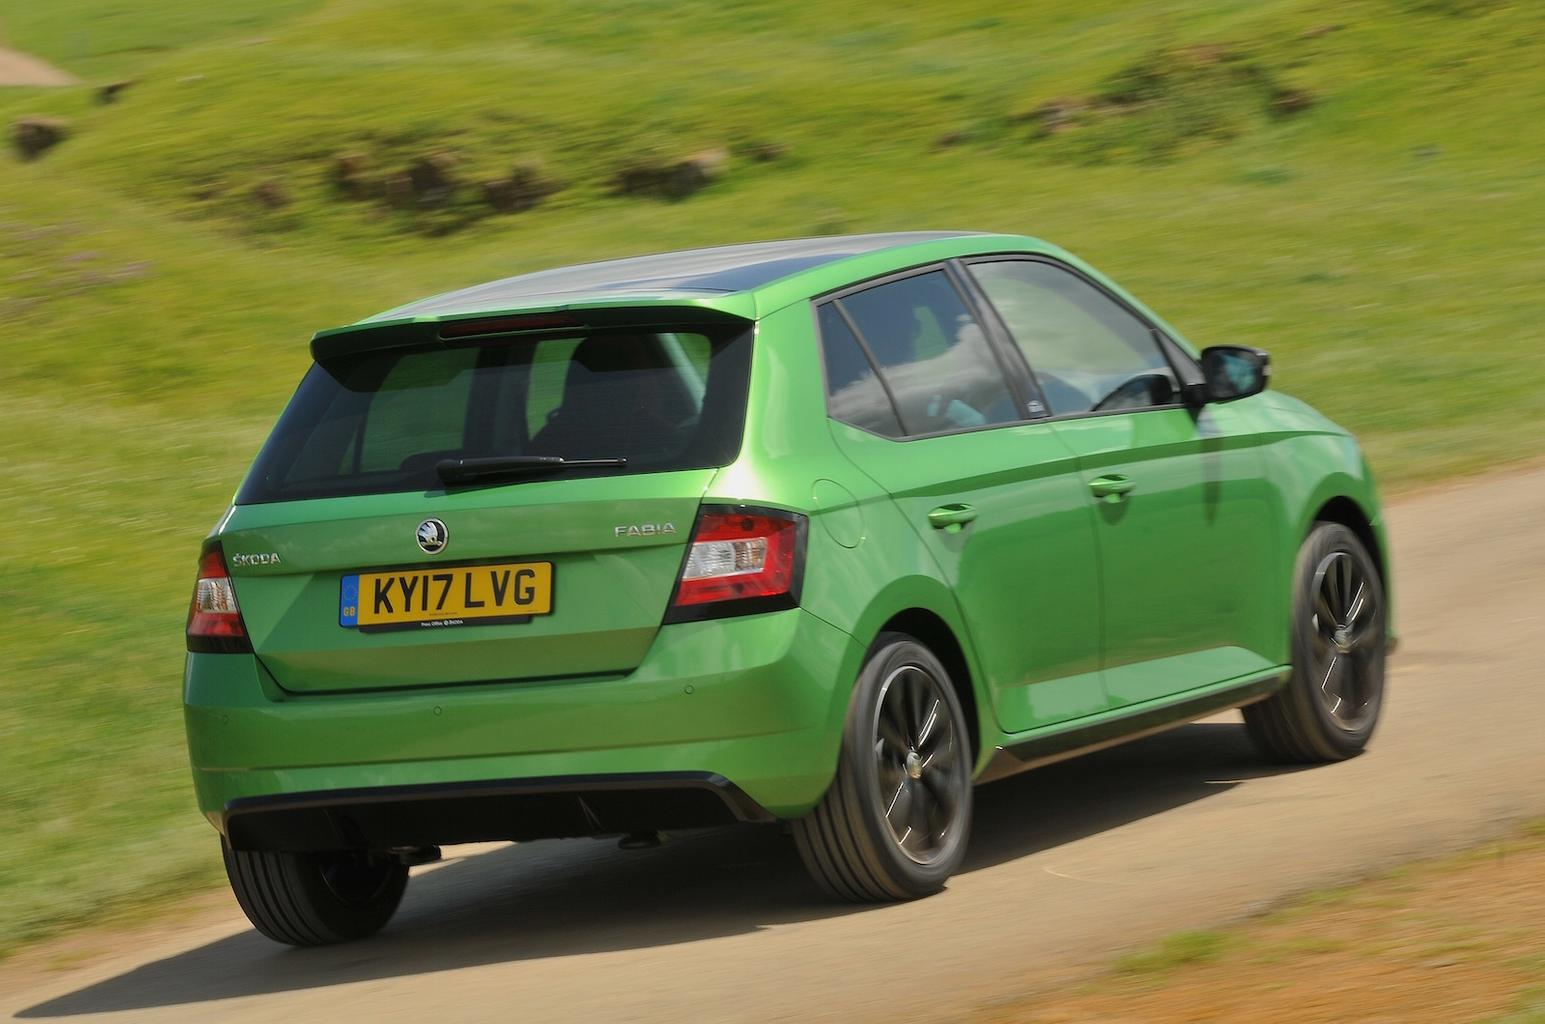 2017 Skoda Fabia 1.0 TSI 95 review - price, specs and release date